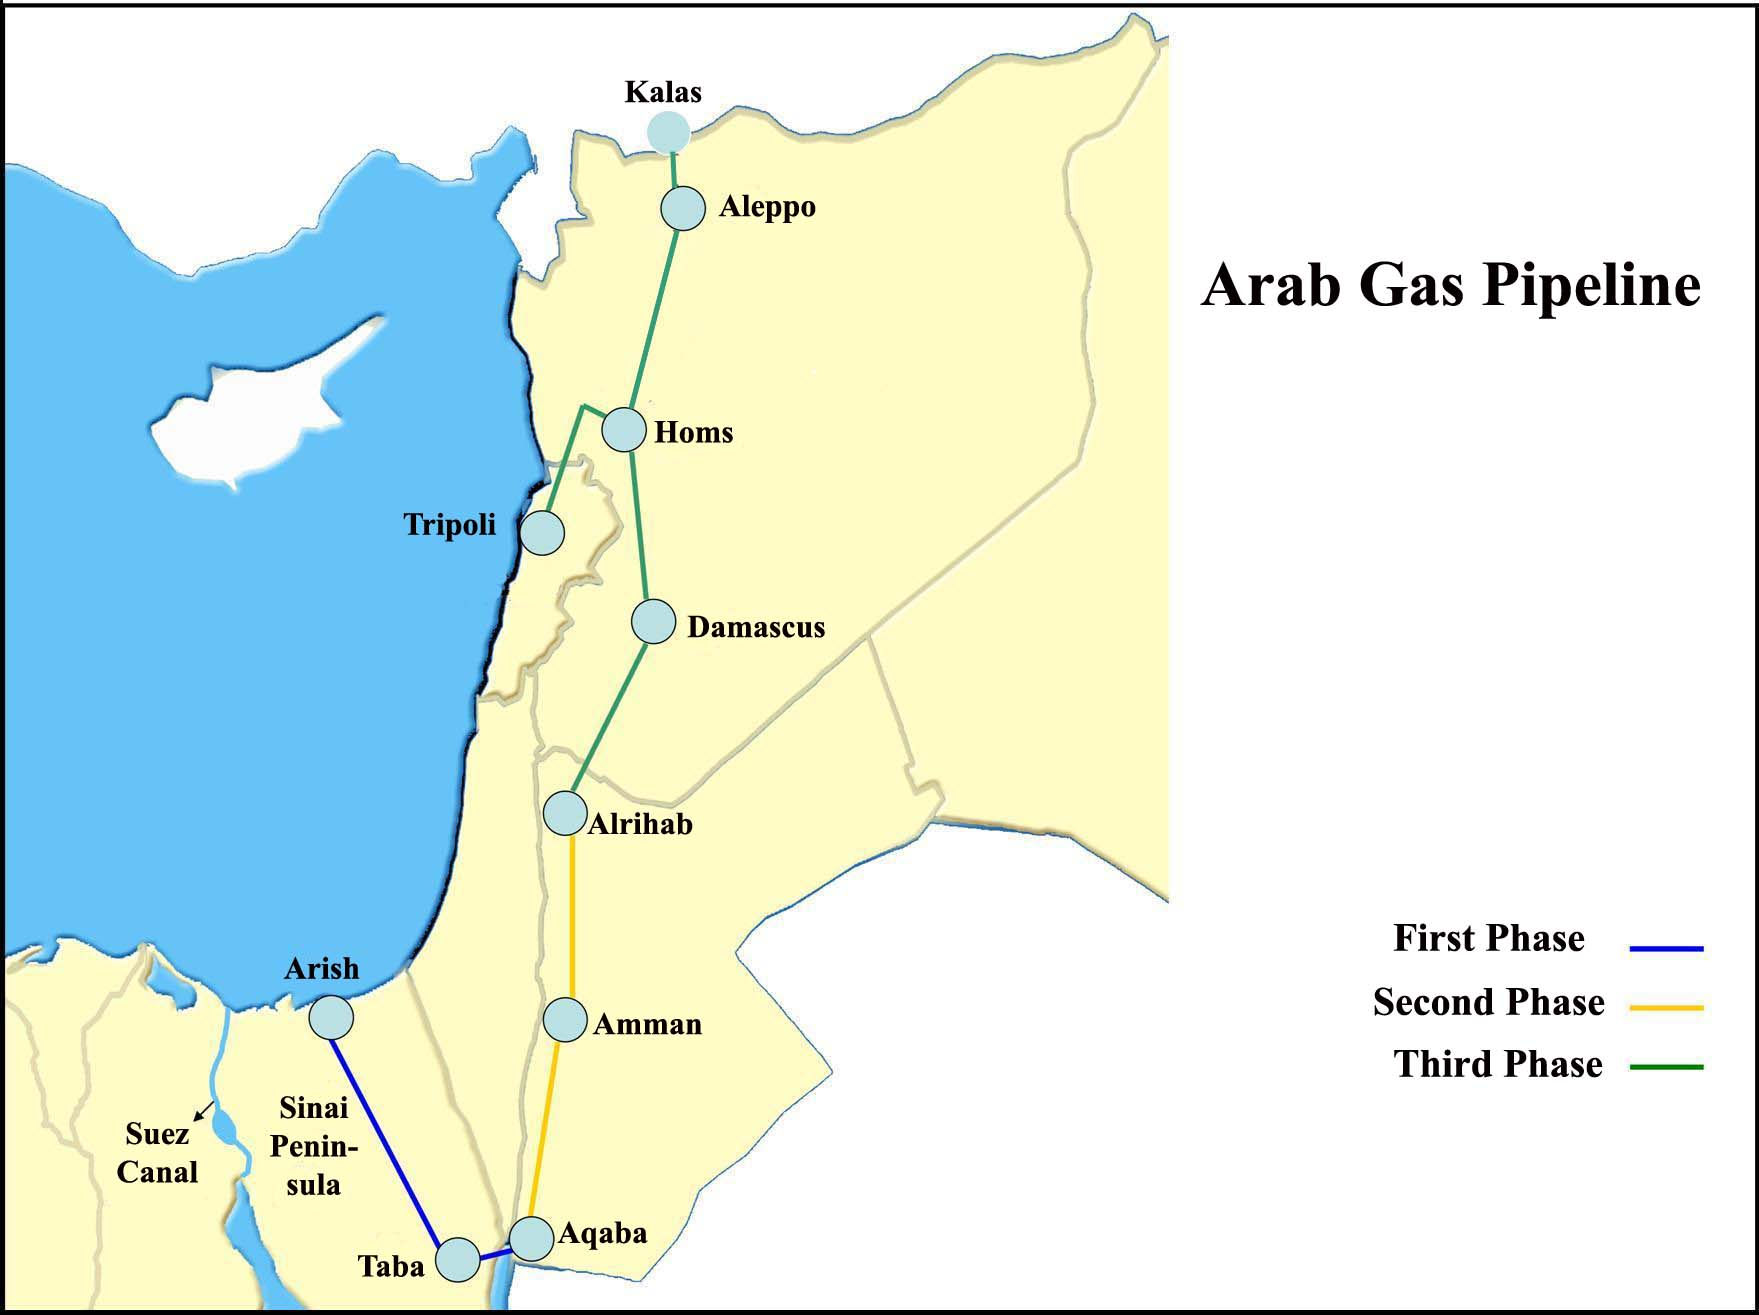 The Wars in the Middle East and North Africa Are NOT Just About Oil … They're Also About GAS arabGasPipeline